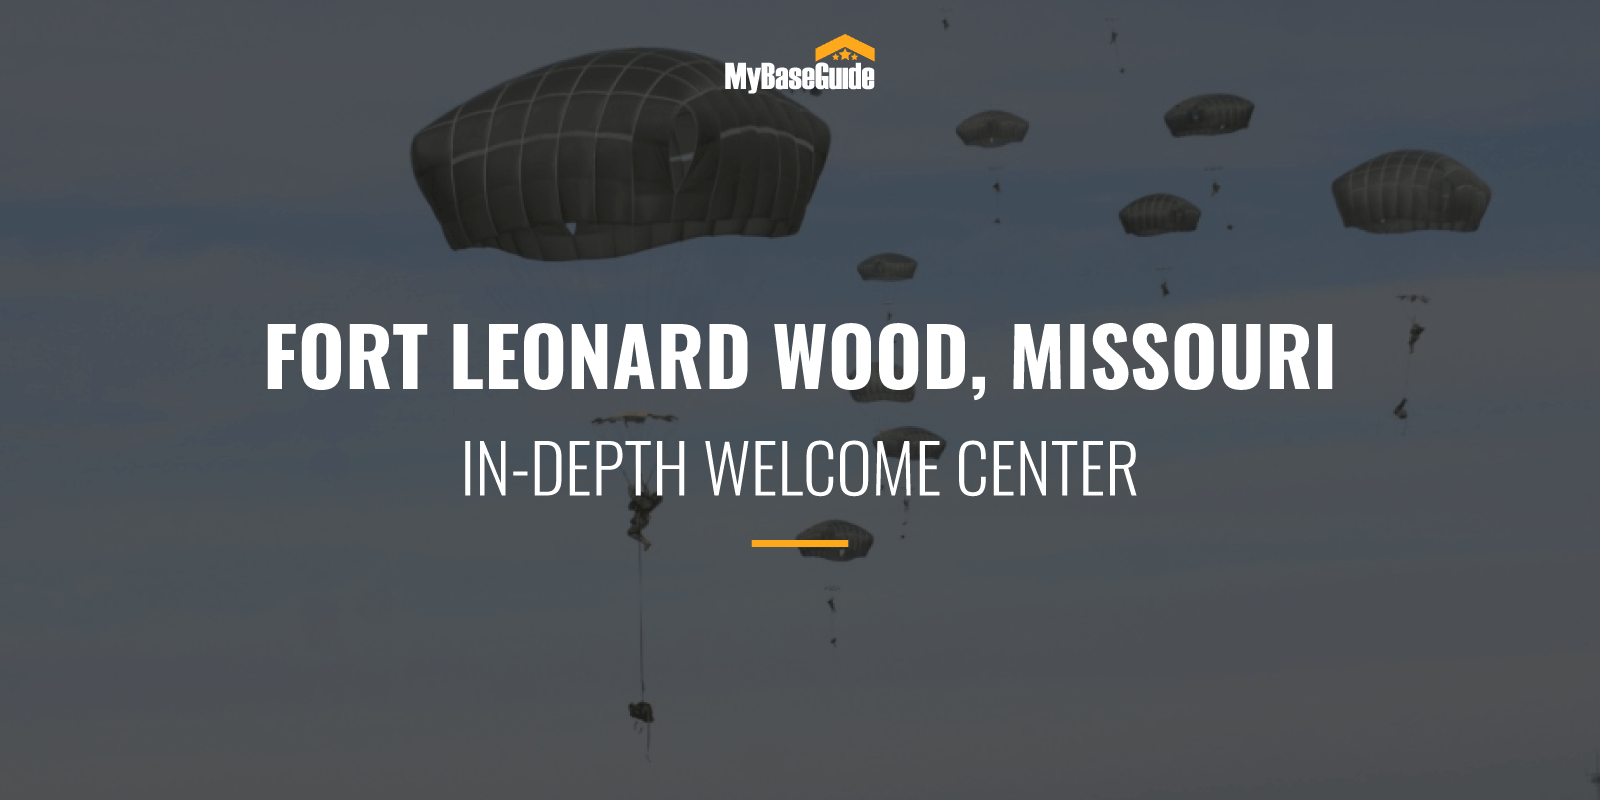 Fort Leonard Wood In-Depth Welcome Center